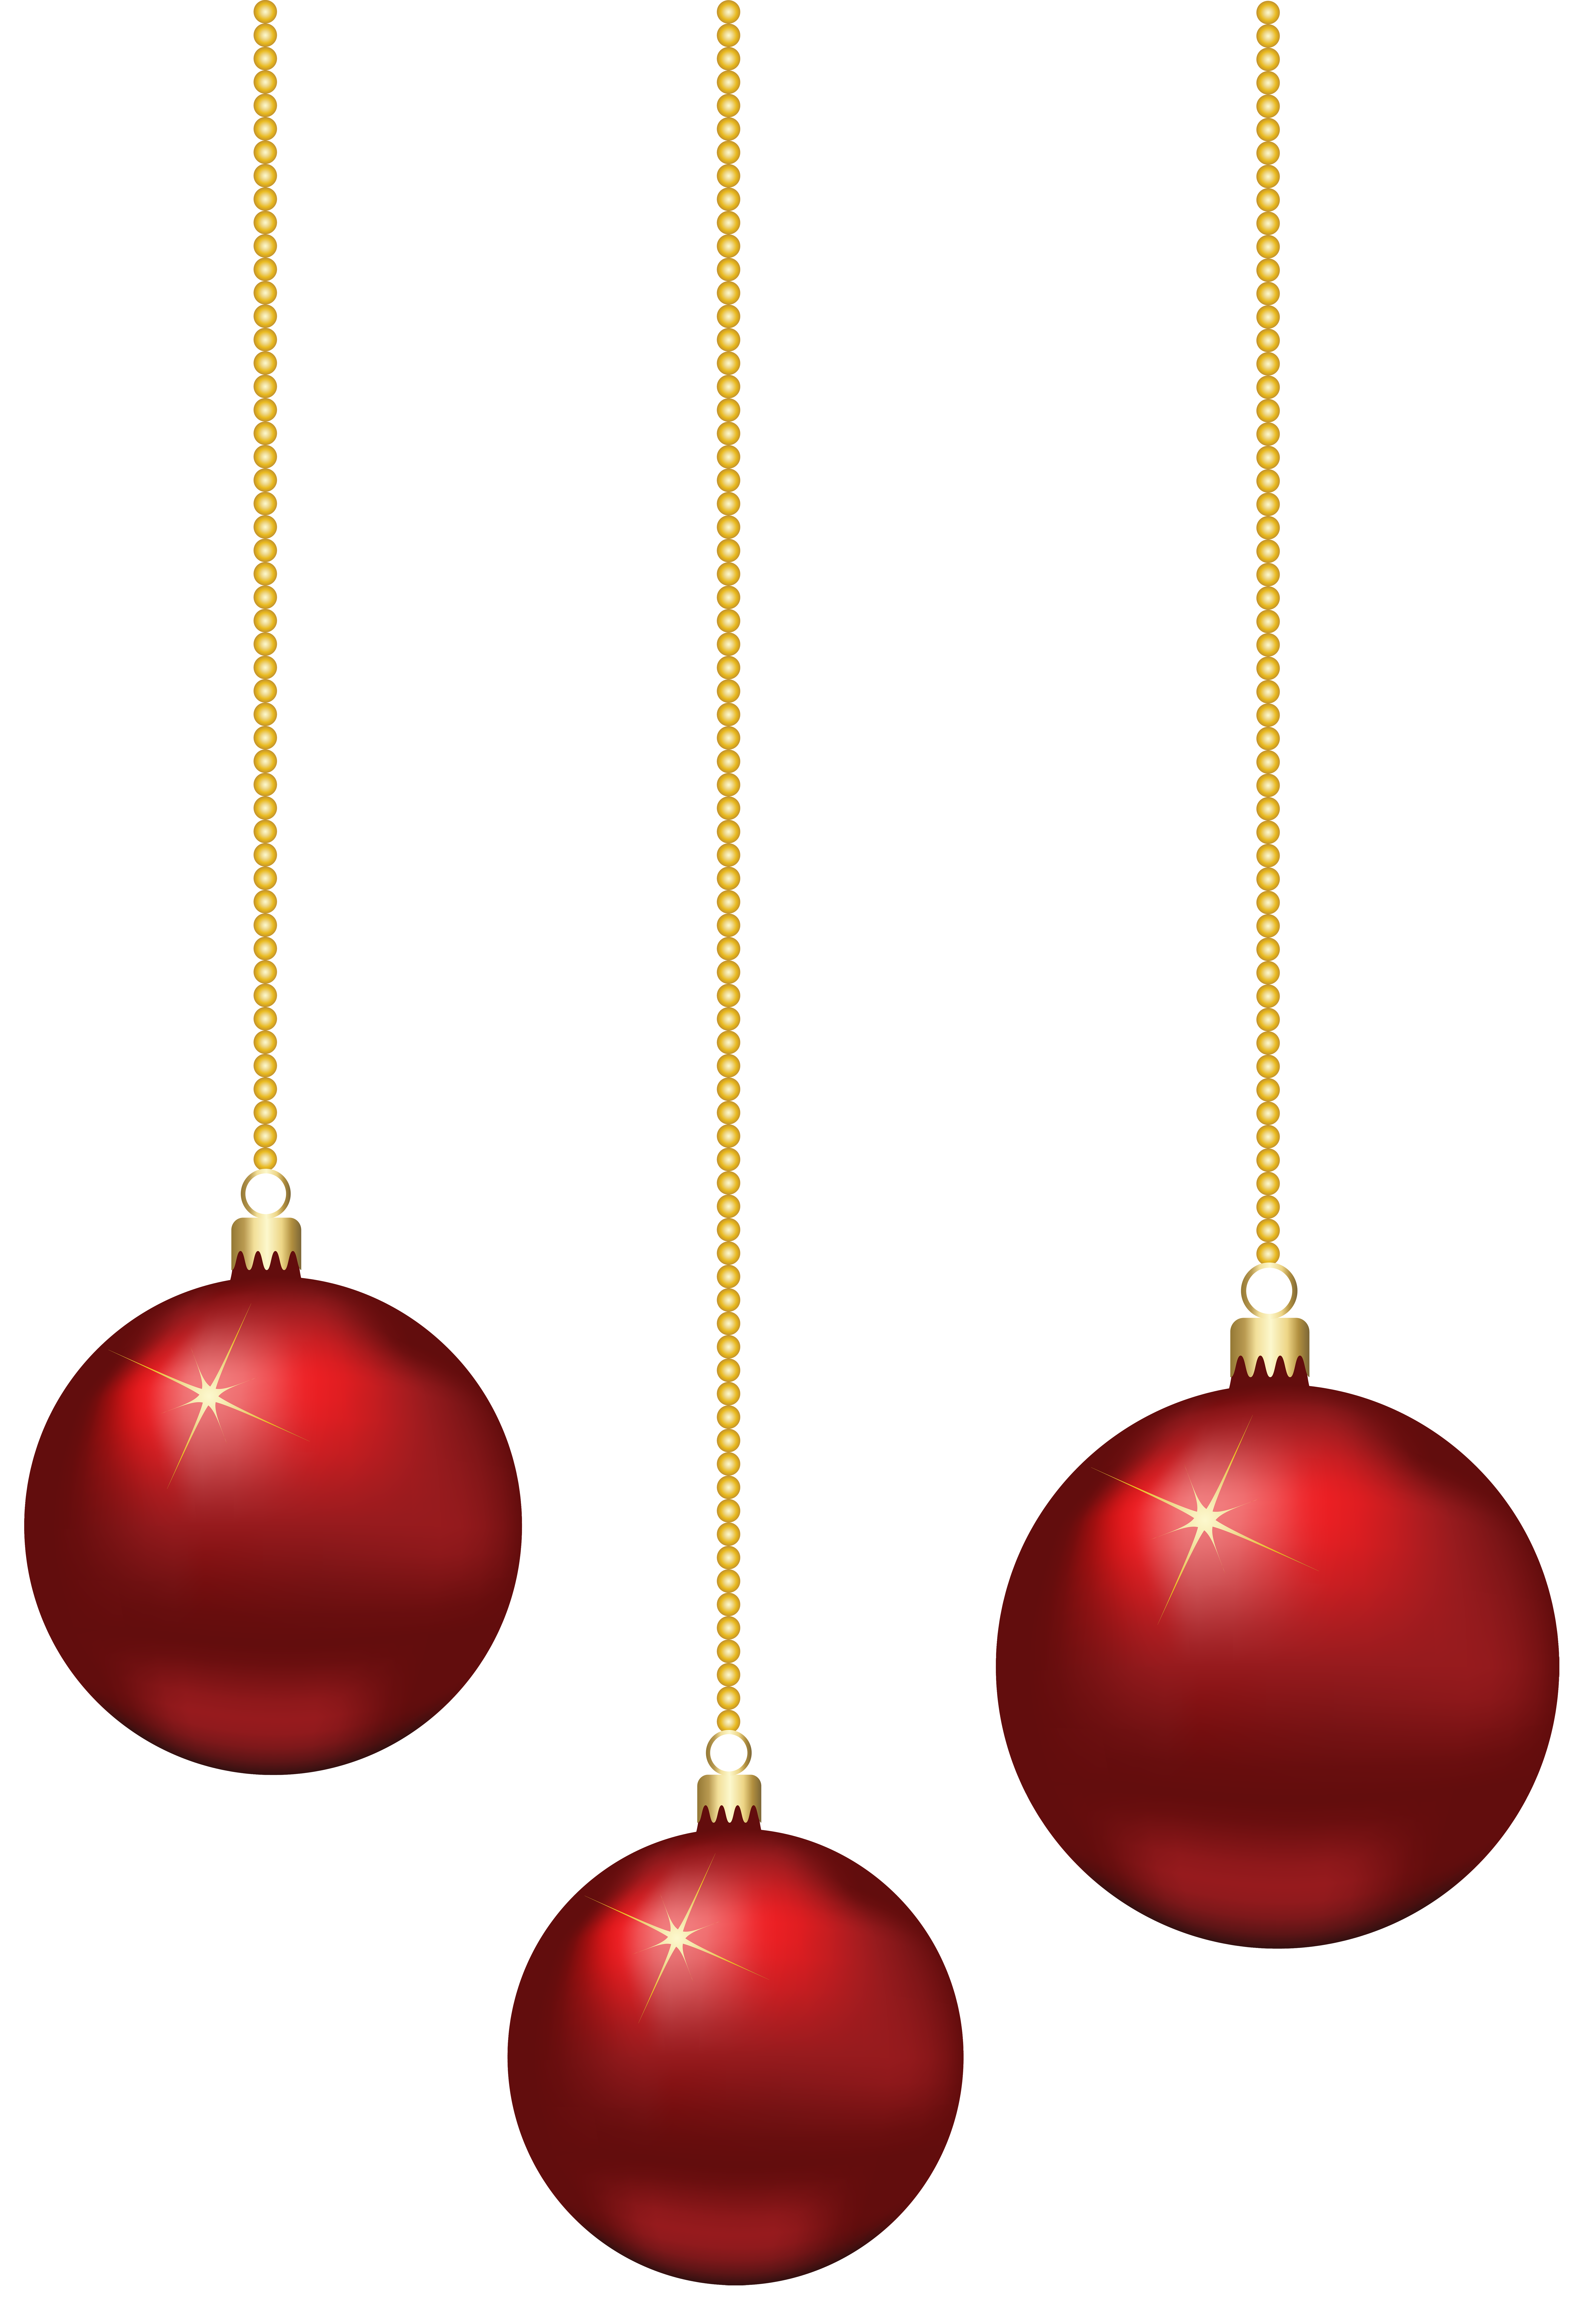 Hanging christmas ornaments clipart clipart royalty free download Hanging Elegant RedChristmas Balls PNG Clip Art Image clipart royalty free download